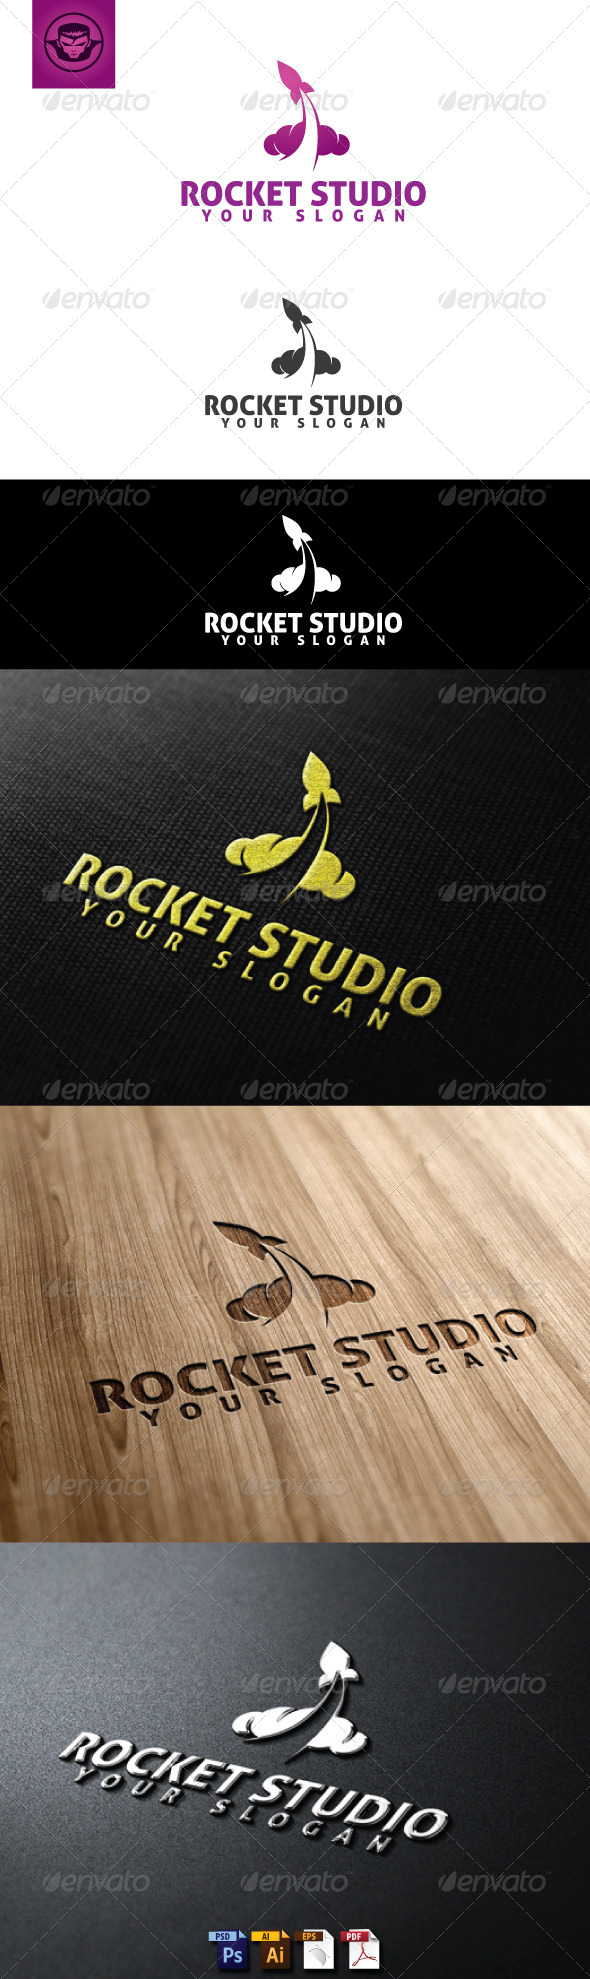 GraphicRiver Rocket Studio Logo Template 5093770